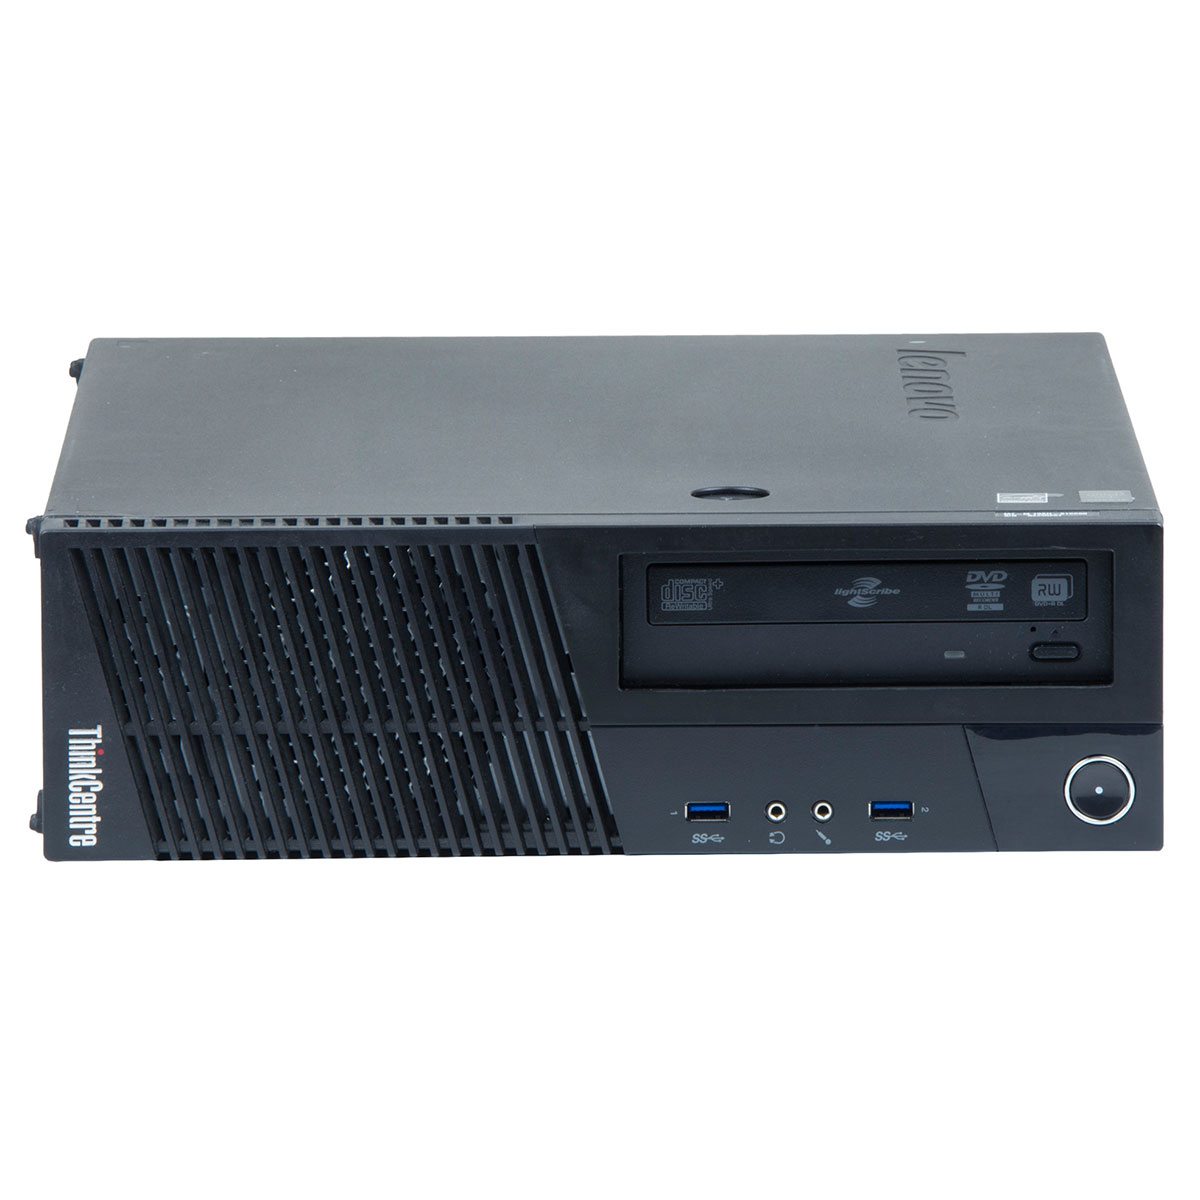 Lenovo ThinkCentre M83 Intel Core i7-4790K 4.00GHz  8GB DDR3  256GB SSD  SFF  calculator refurbished